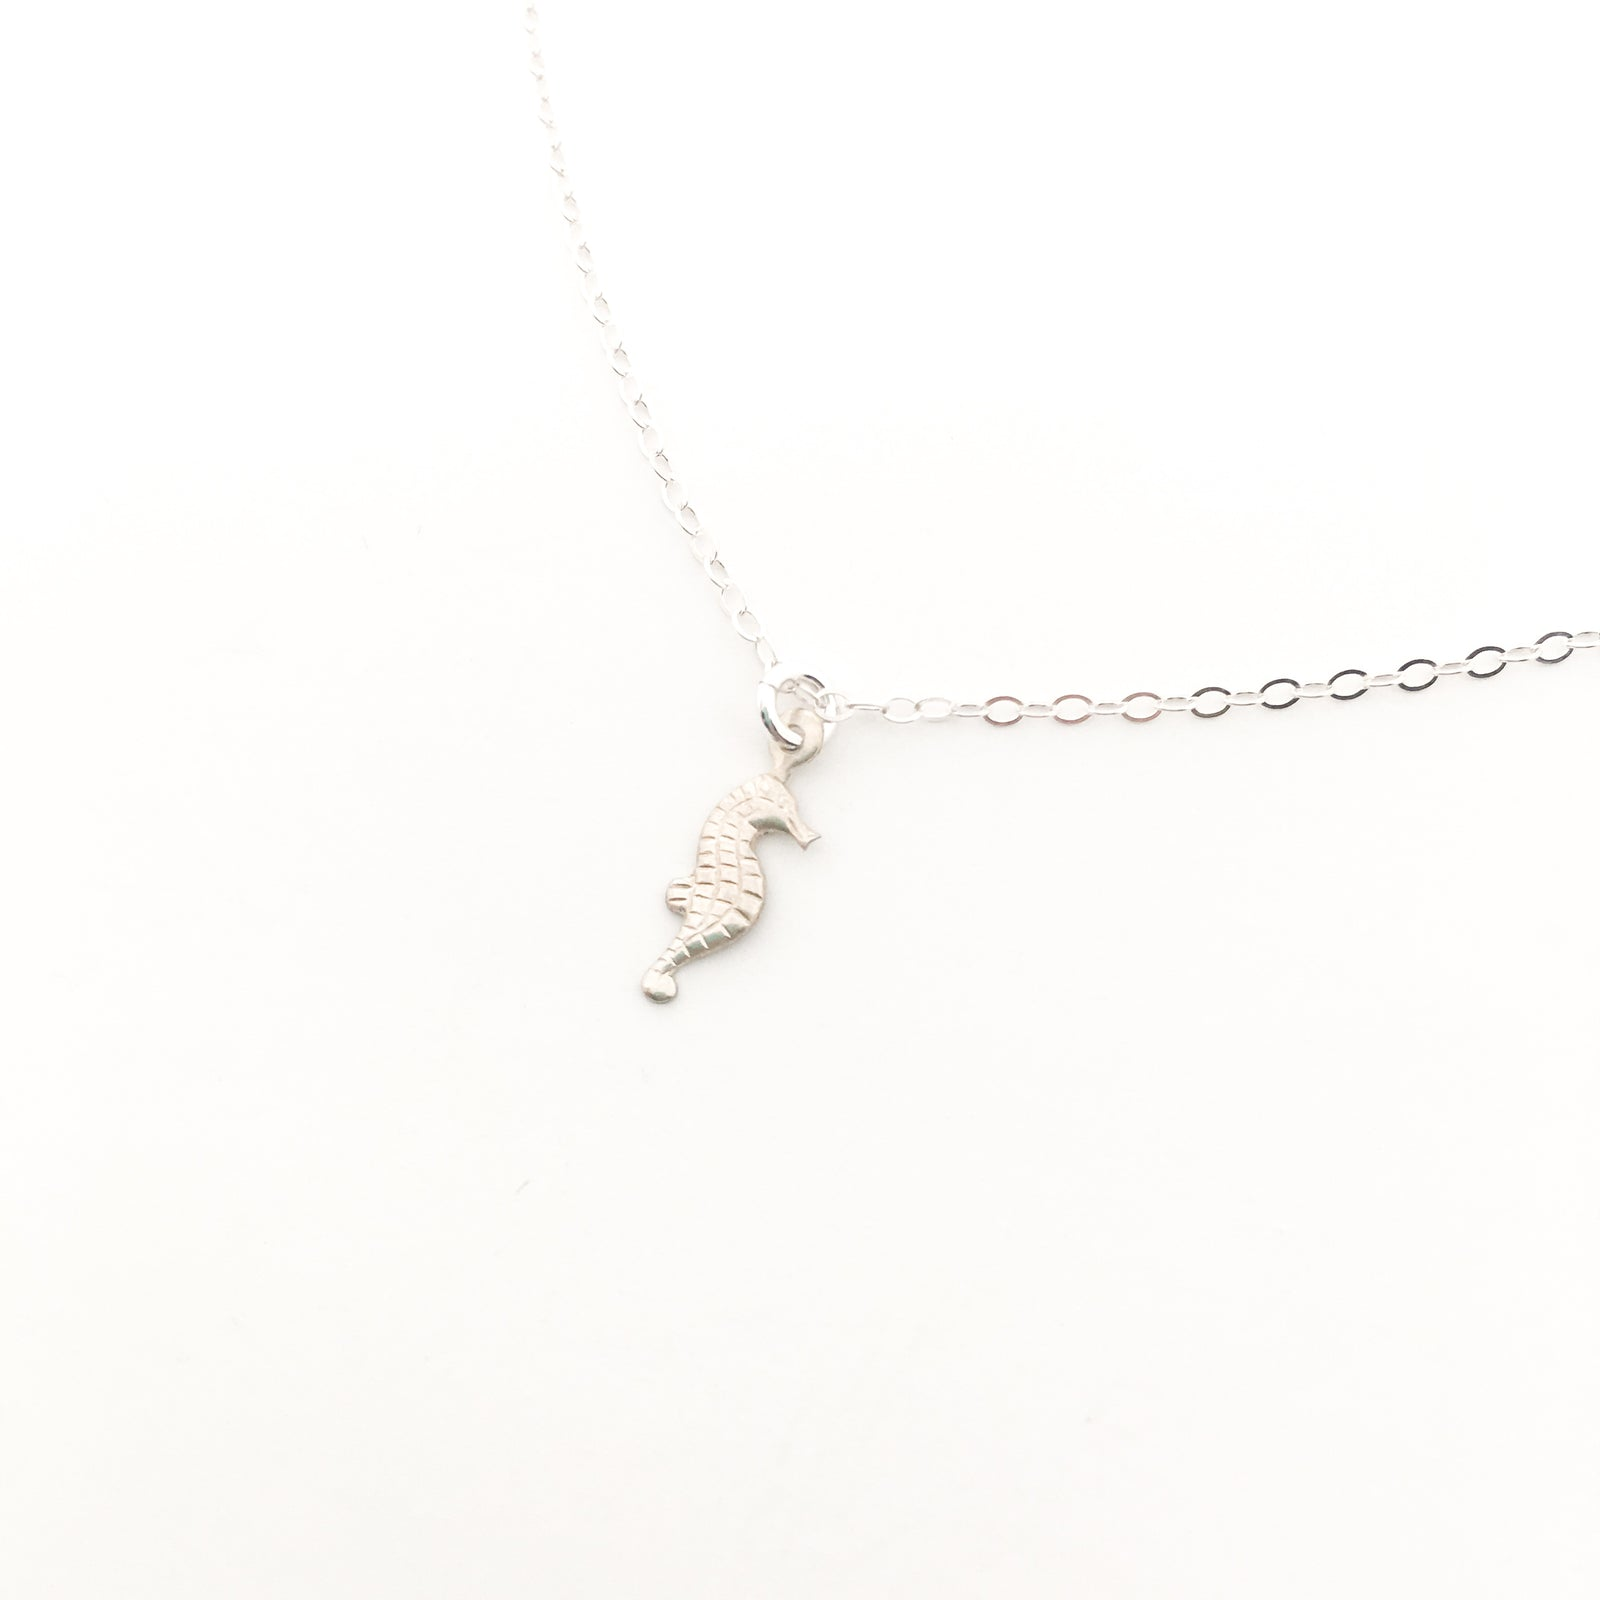 SEAHORSE NECKLACE | STERLING SILVER